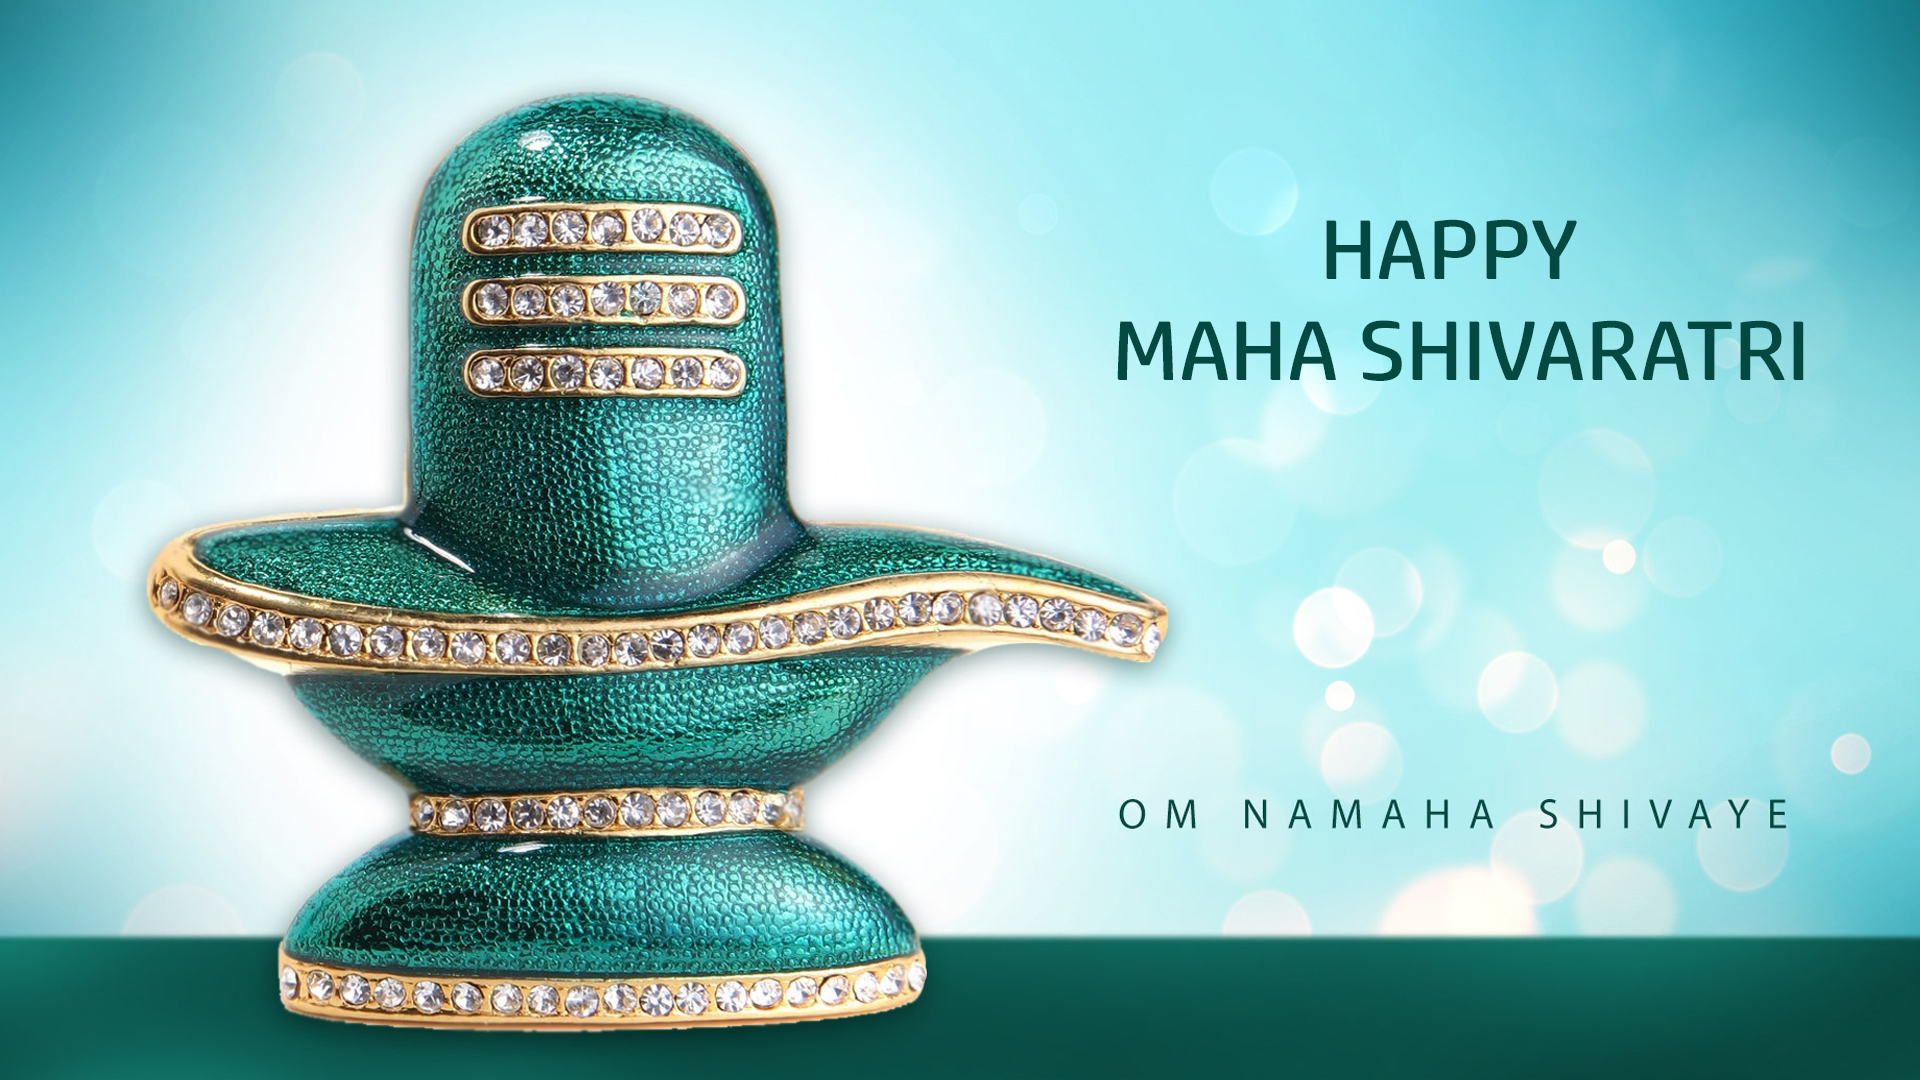 Maha shivaratri 2018 images quotes messages wishes and greetings maha shivaratri images m4hsunfo